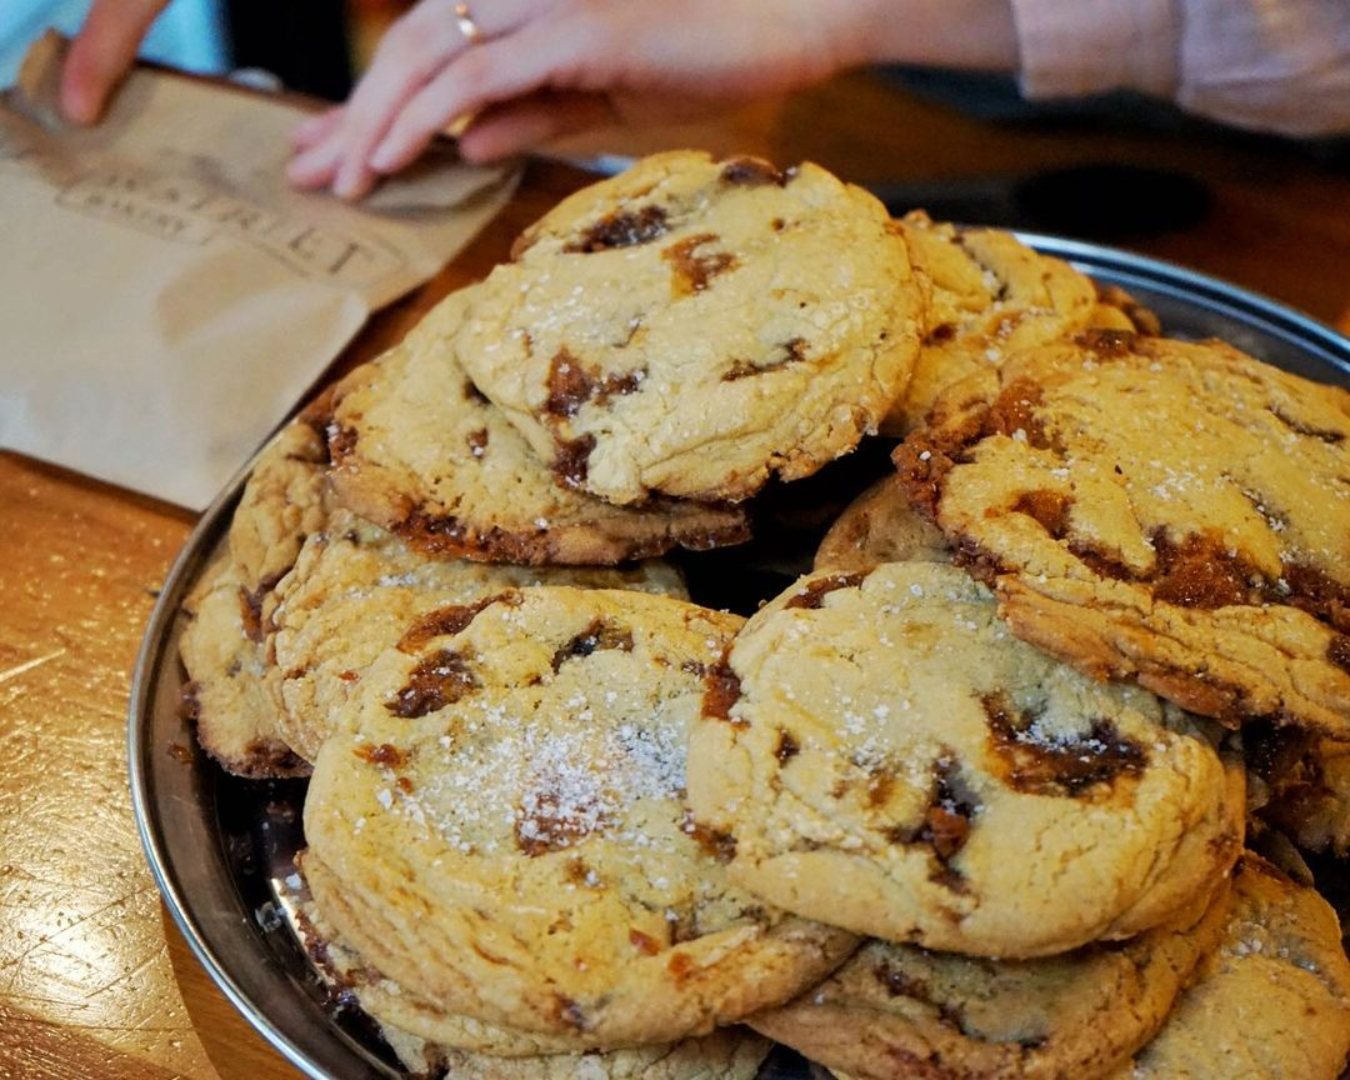 A plate of the beloved Salted Caramel Cookies at Leeds Street Bakery